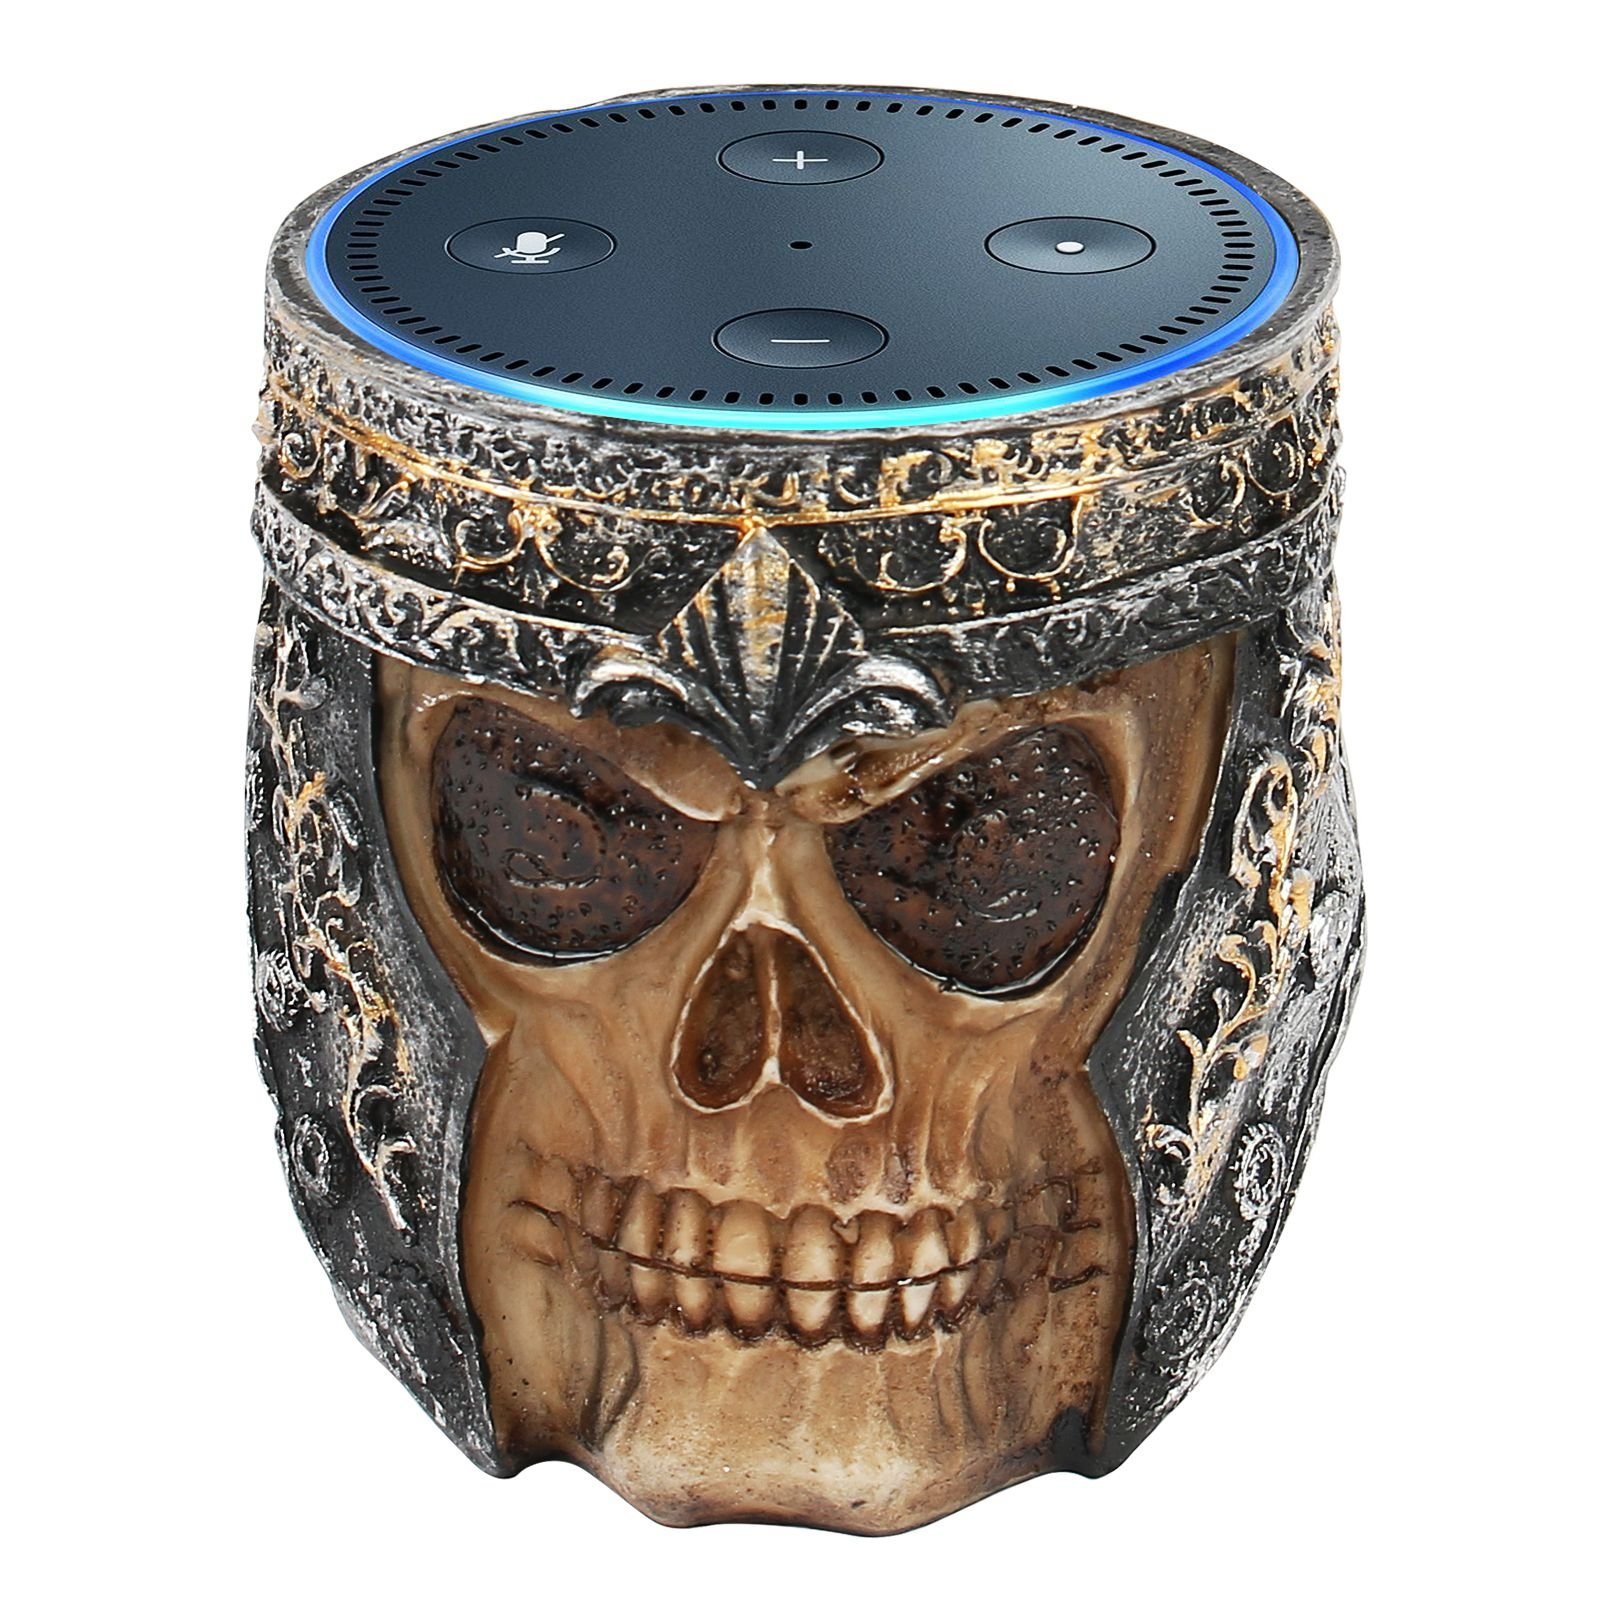 ANTS Speaker Stand Round Cho Dot Case Skull Statue Crafted Guard Station for Round Cho Dot By Skull